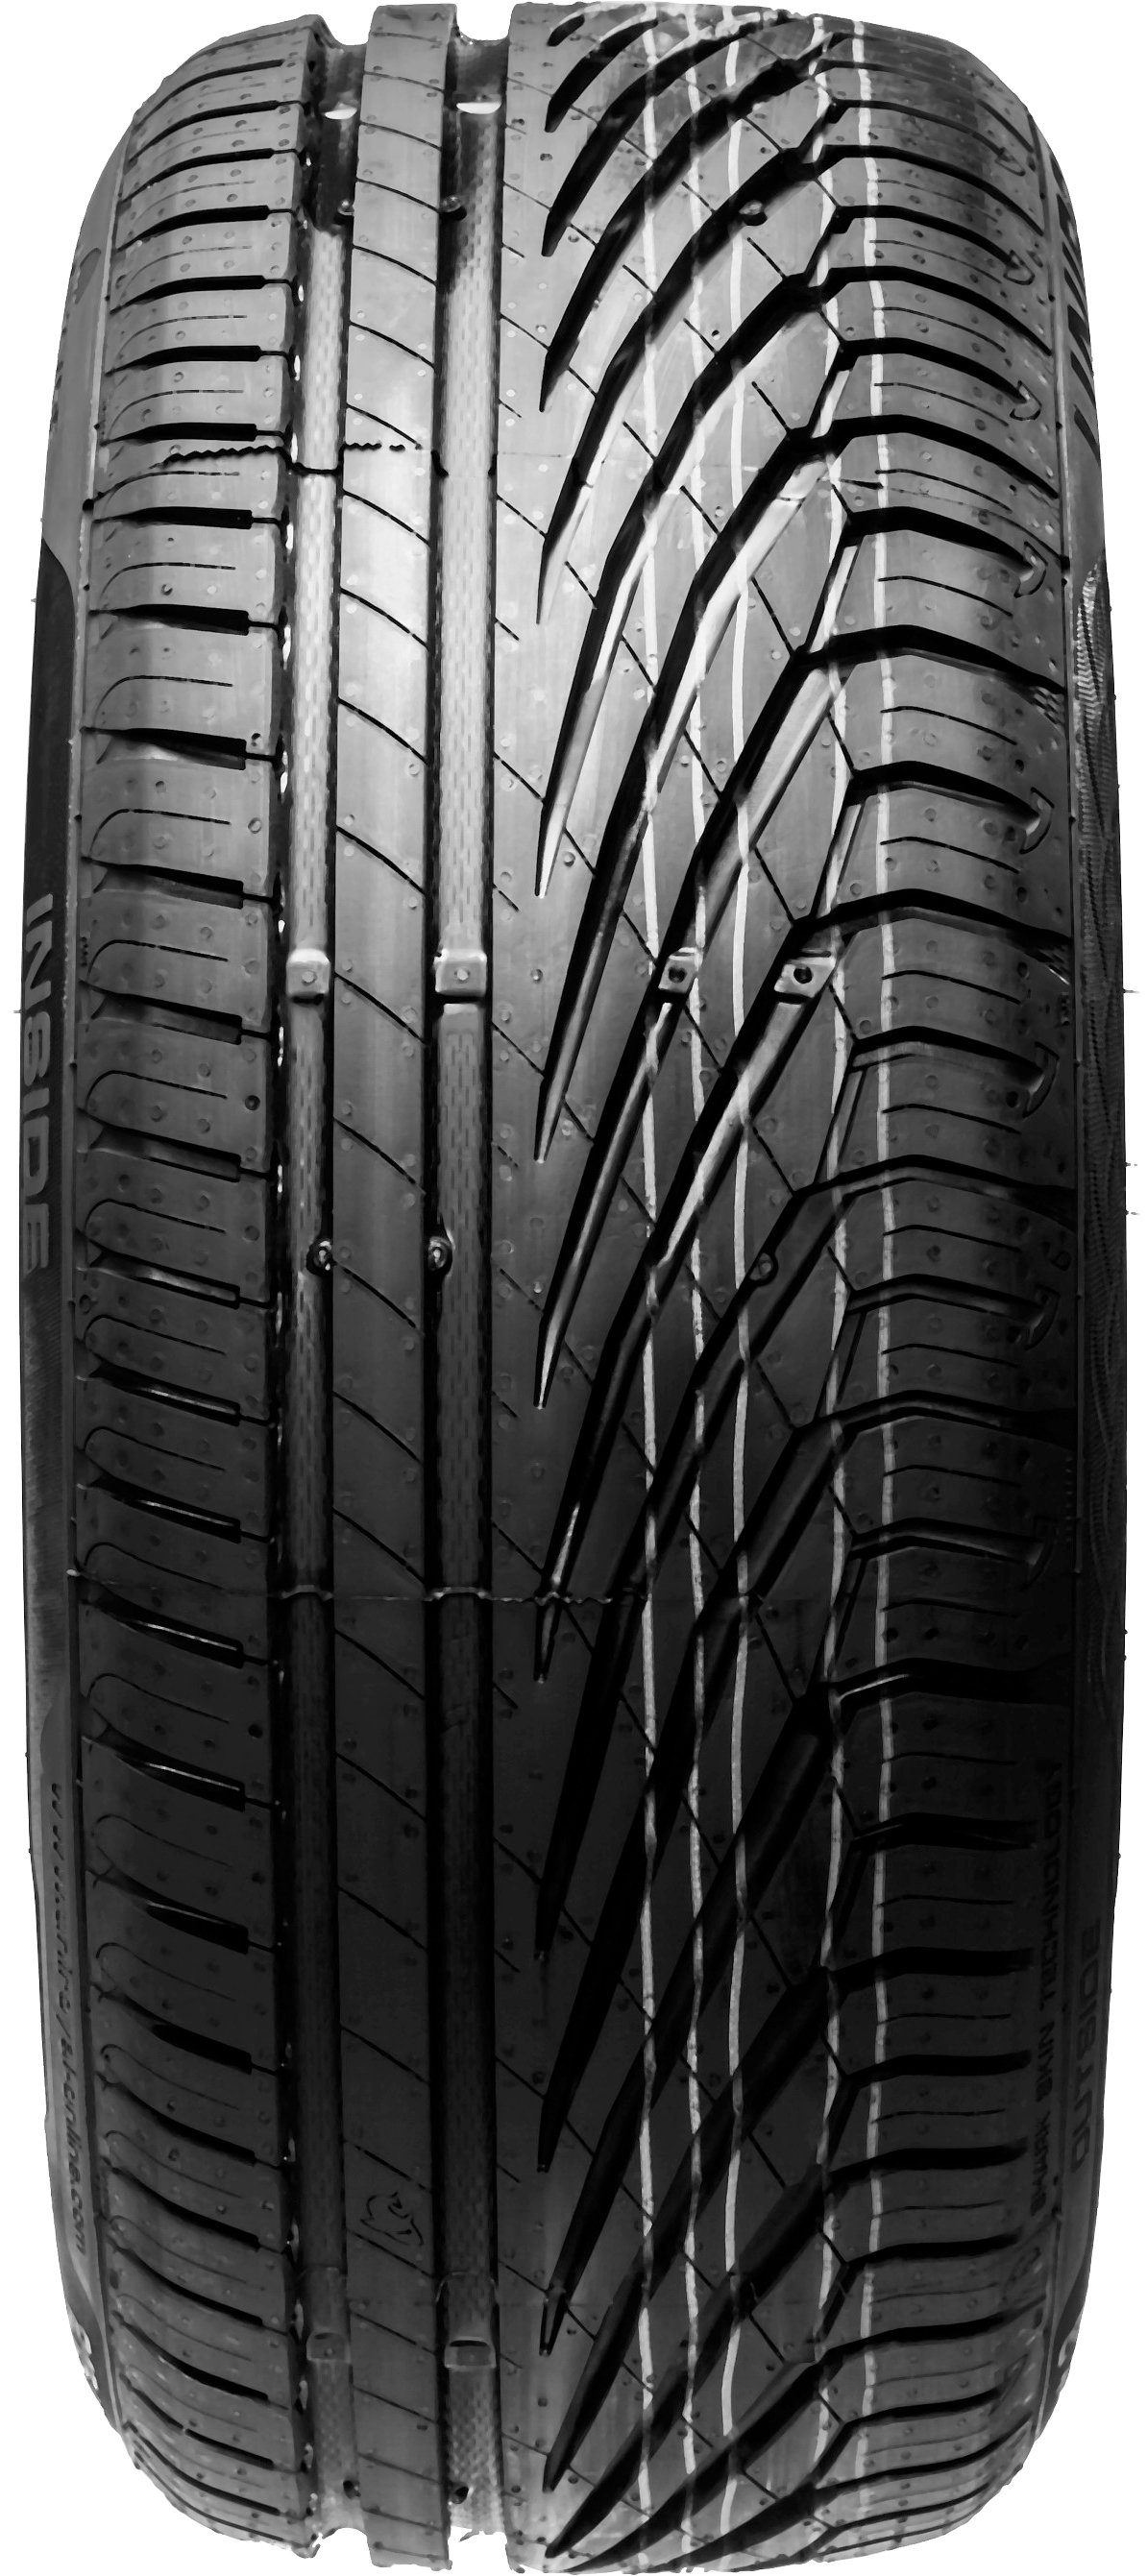 UNIROYAL Sommerreifen »RainSport 3«, 235/45 R18 98Y XL